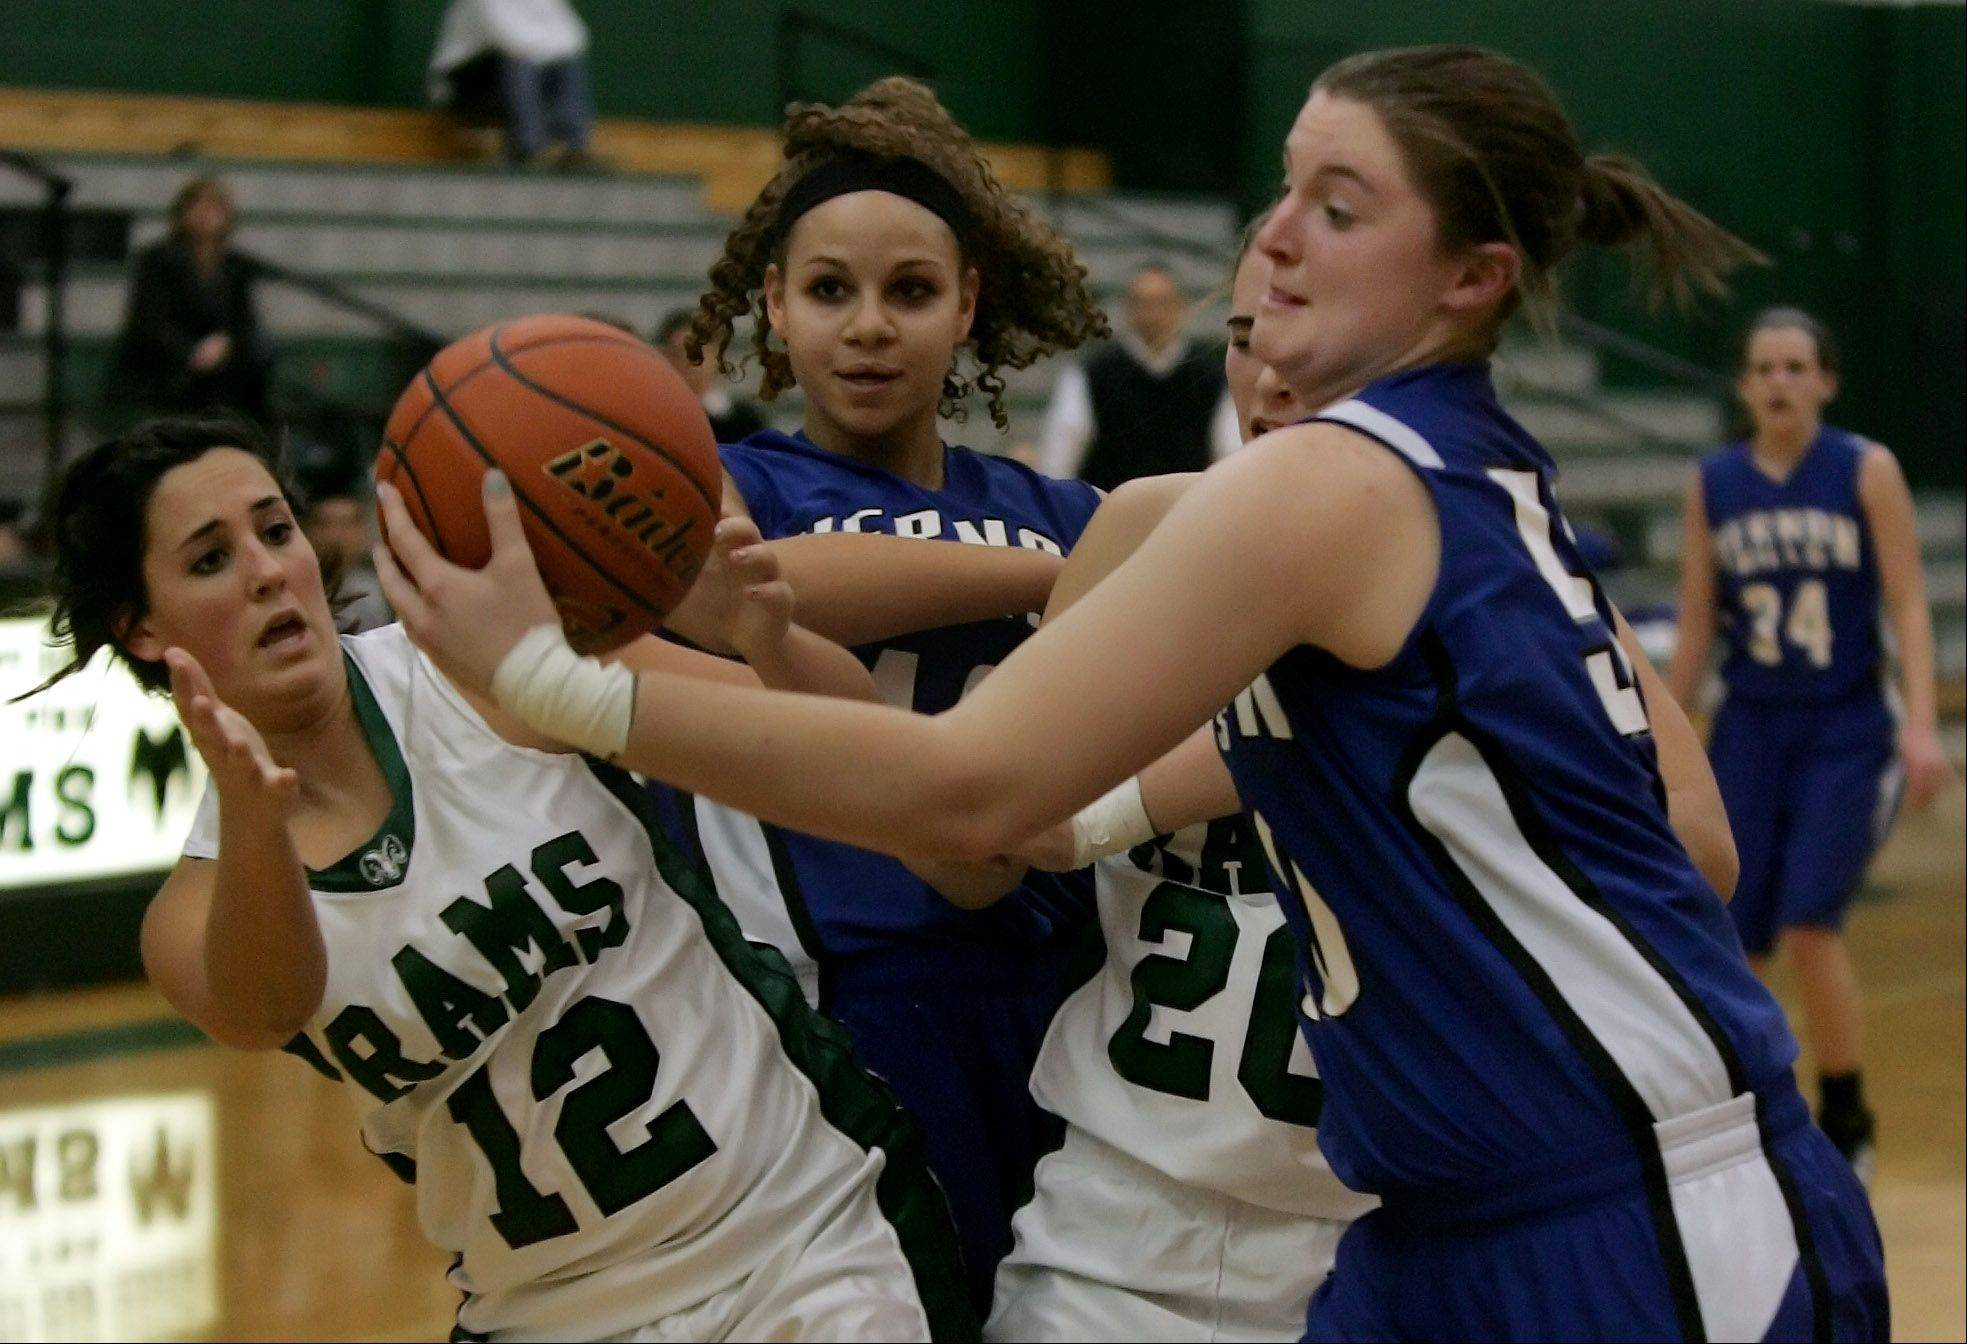 Vernon Hills' Meri Bennett-Swanson, right, steals the ball from Grayslake Central players Beth Arnold and Claire Brennan during Tuesday's basketball game in Grayslake.